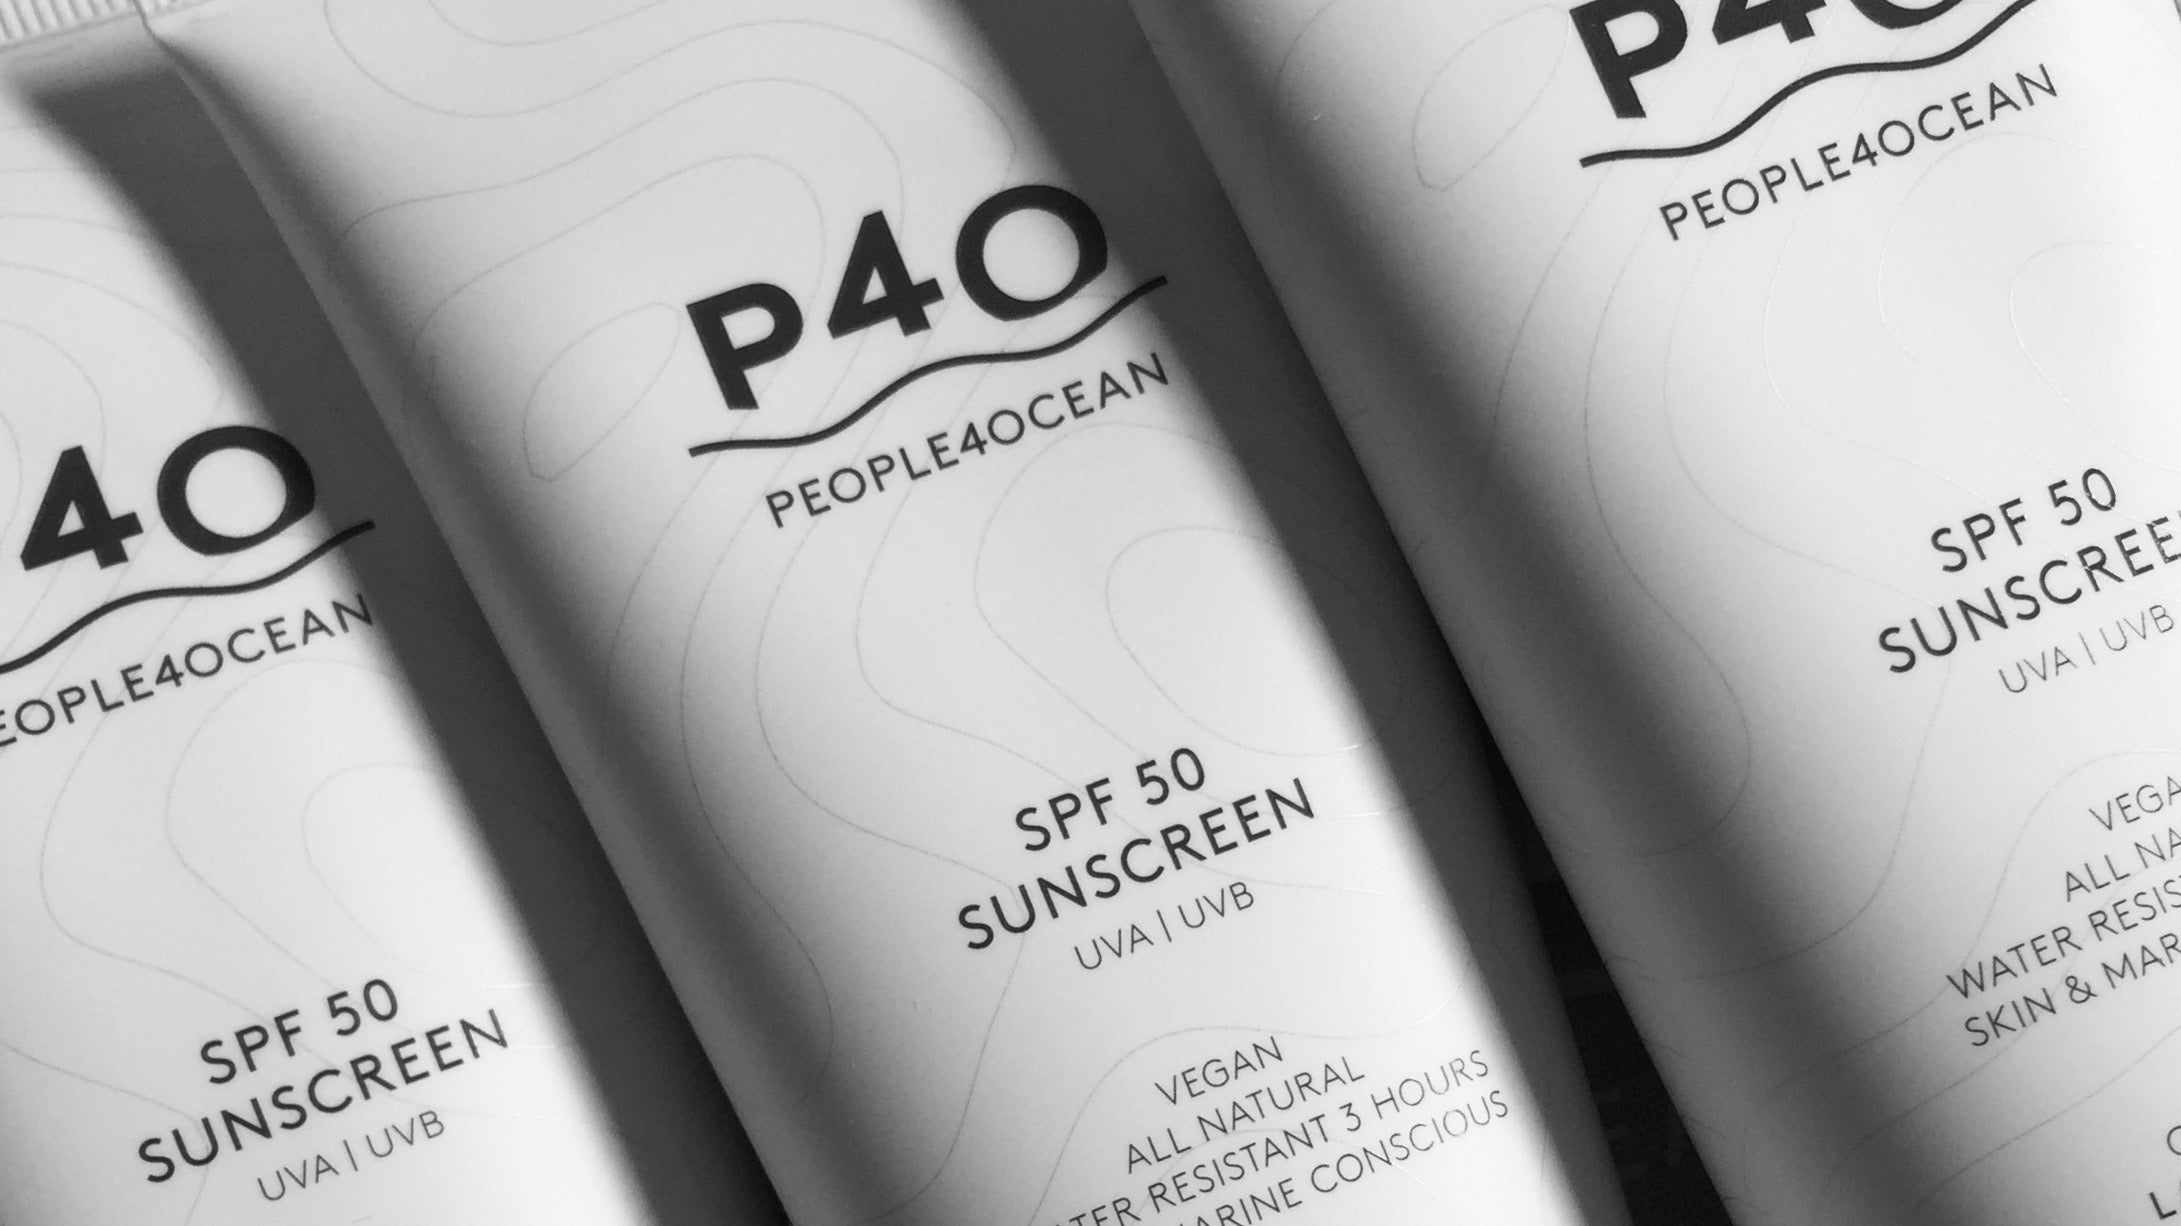 tubes of sunscreen showing the structure and design of the tube